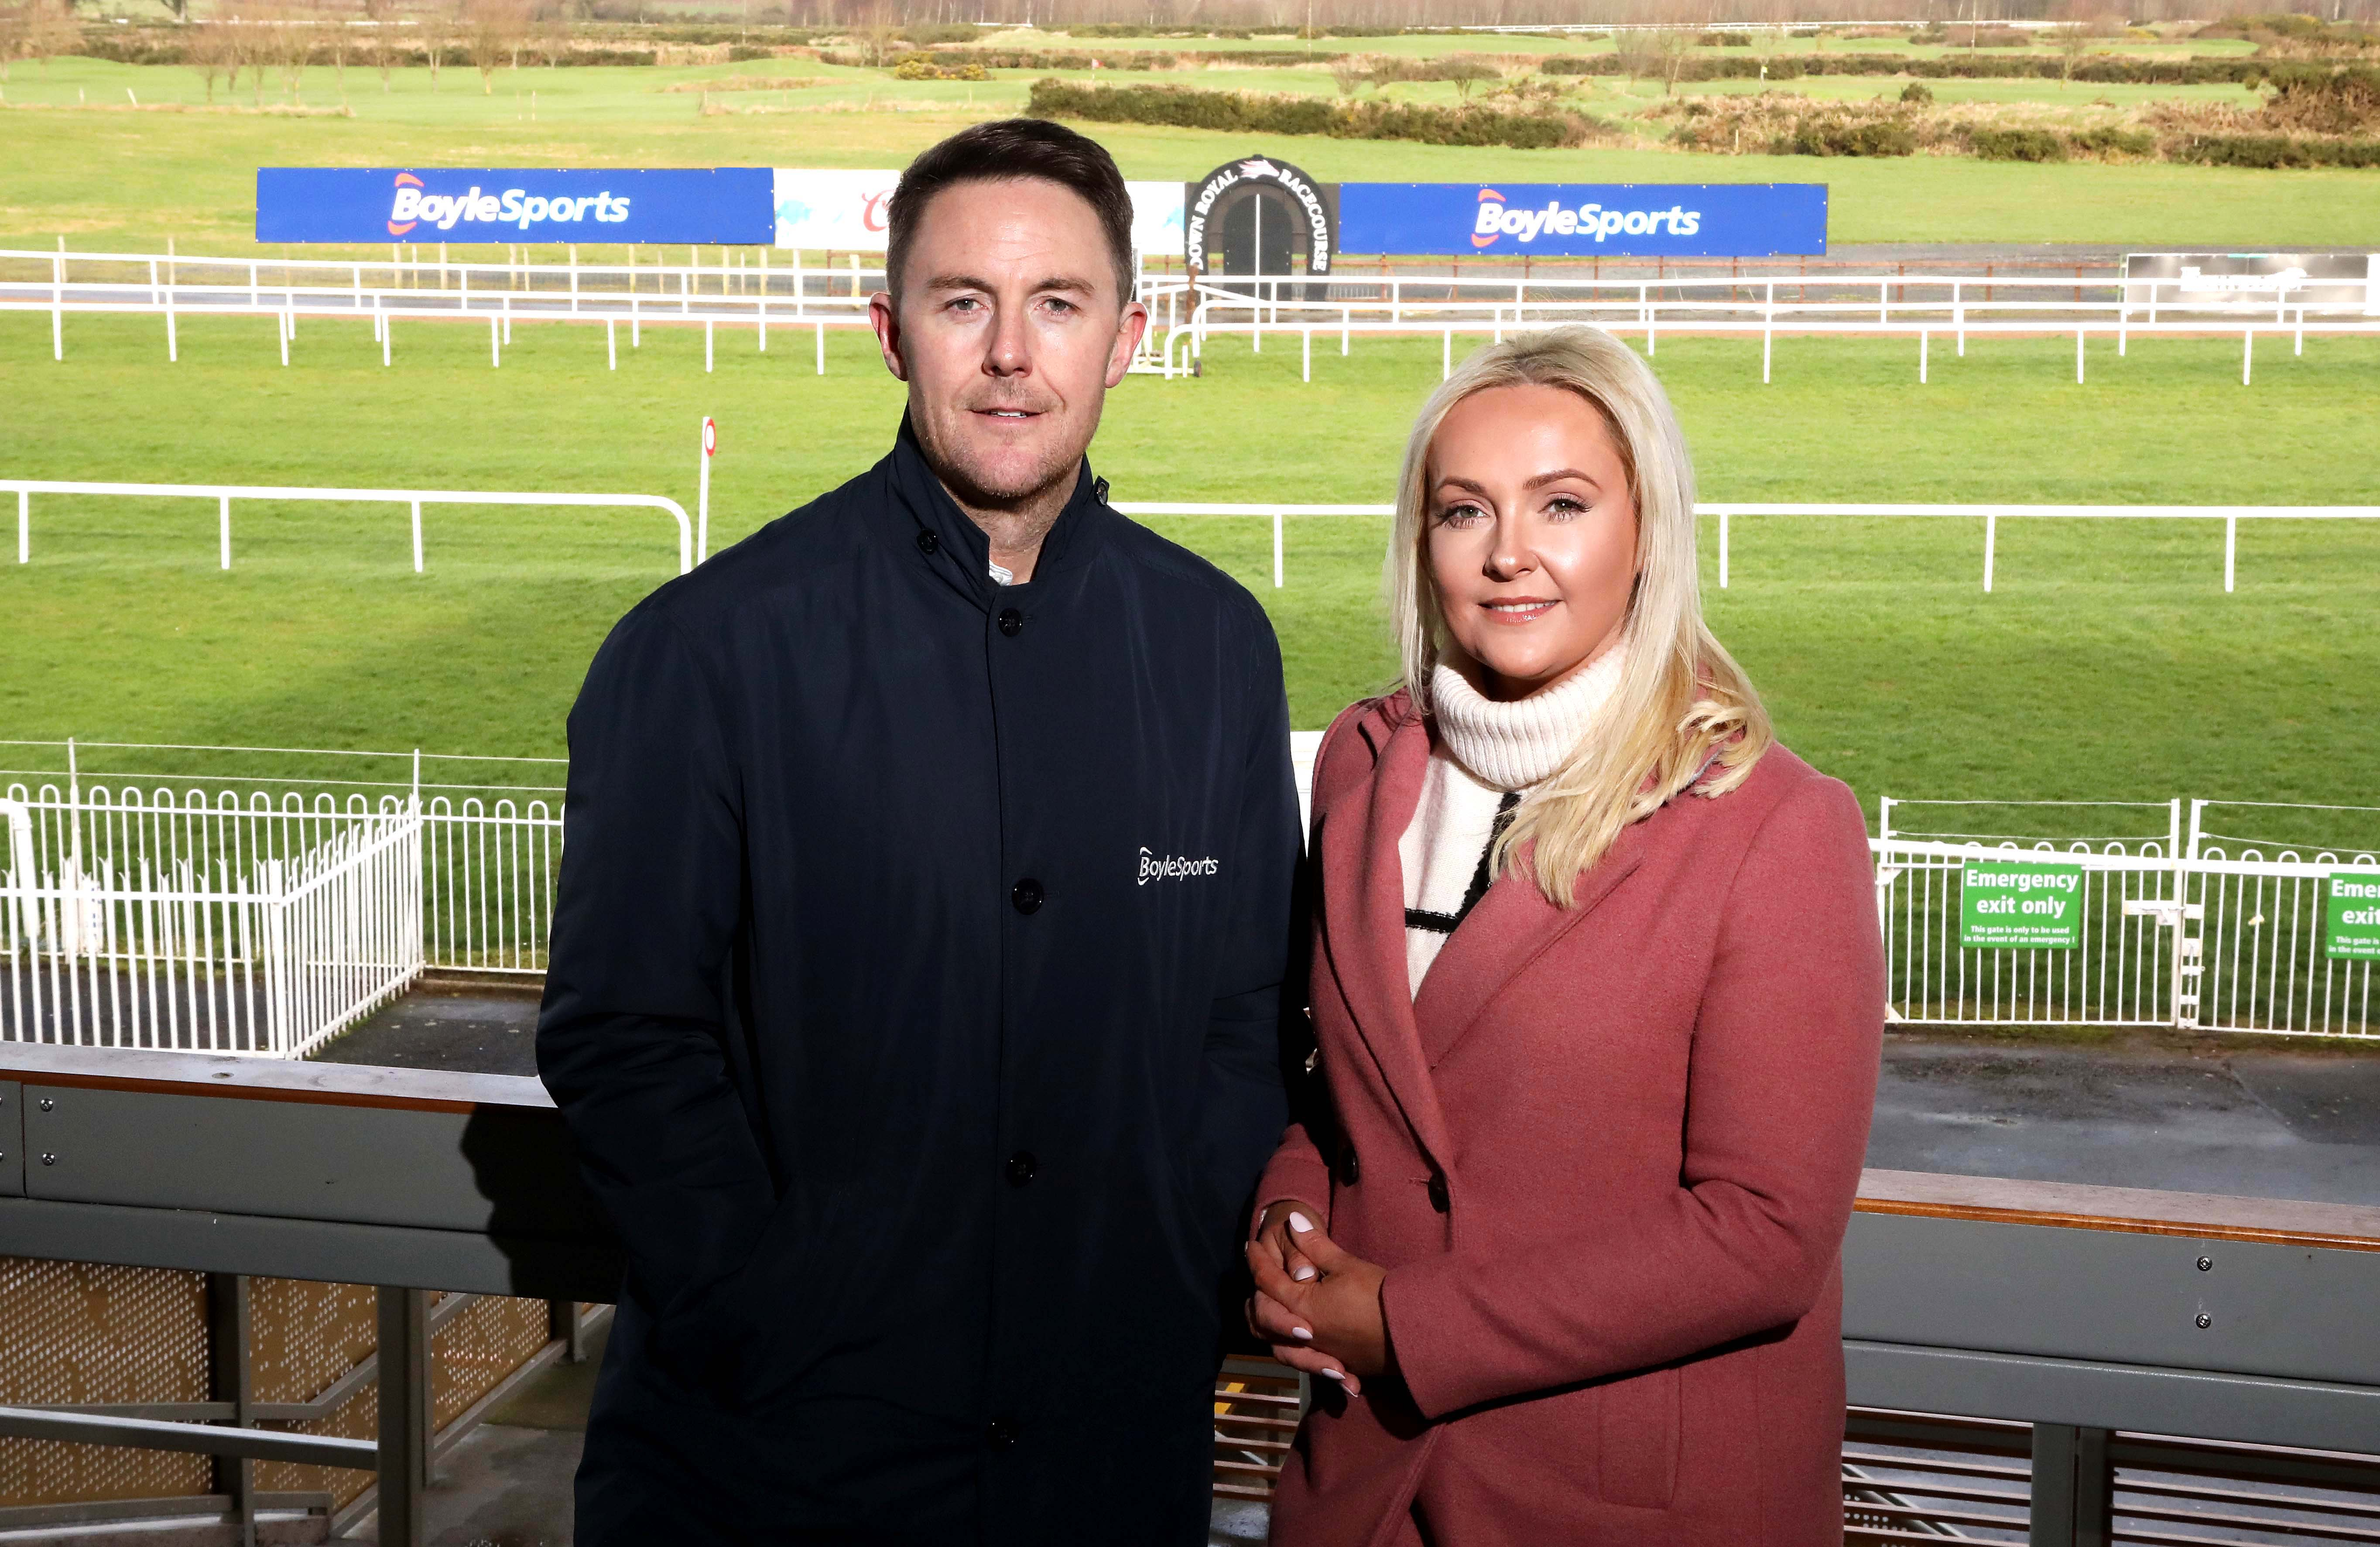 BoyleSports announced as Sponsor of 'Ulster' double at Down Royal